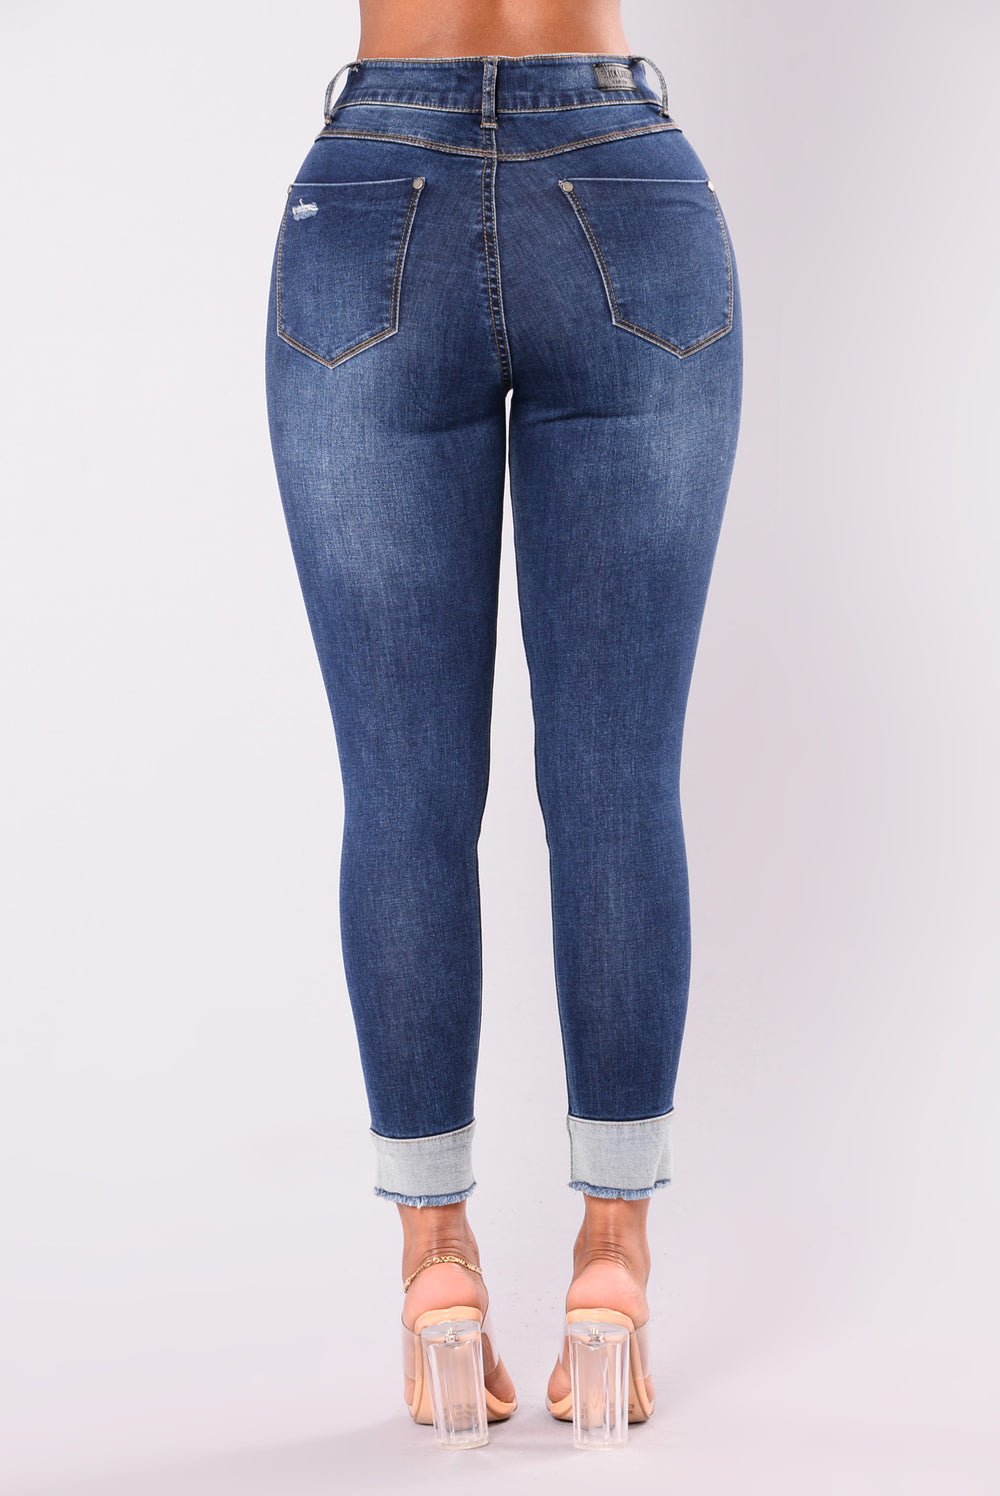 Izola Ankle Jeans - Dark Wash